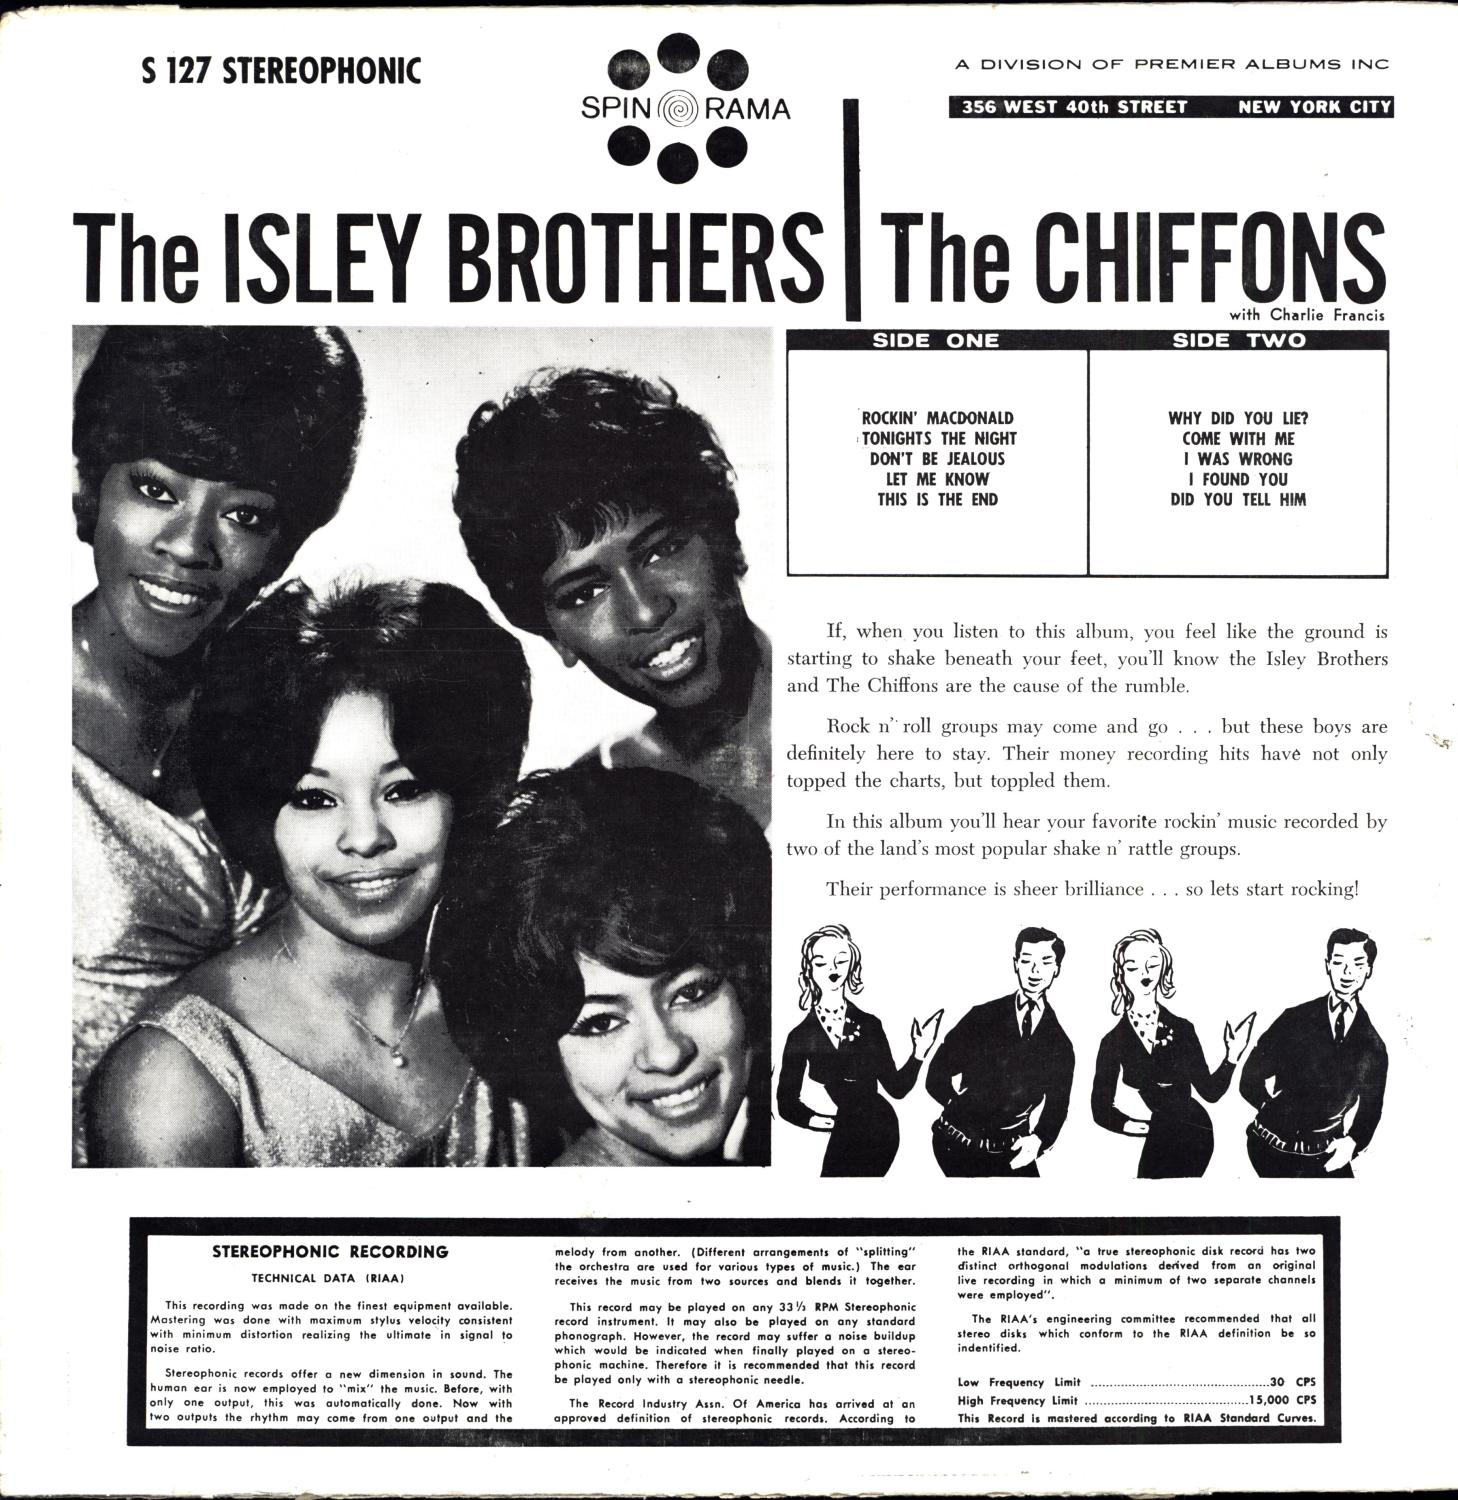 Starring The Isley Brothers and the Chiffons